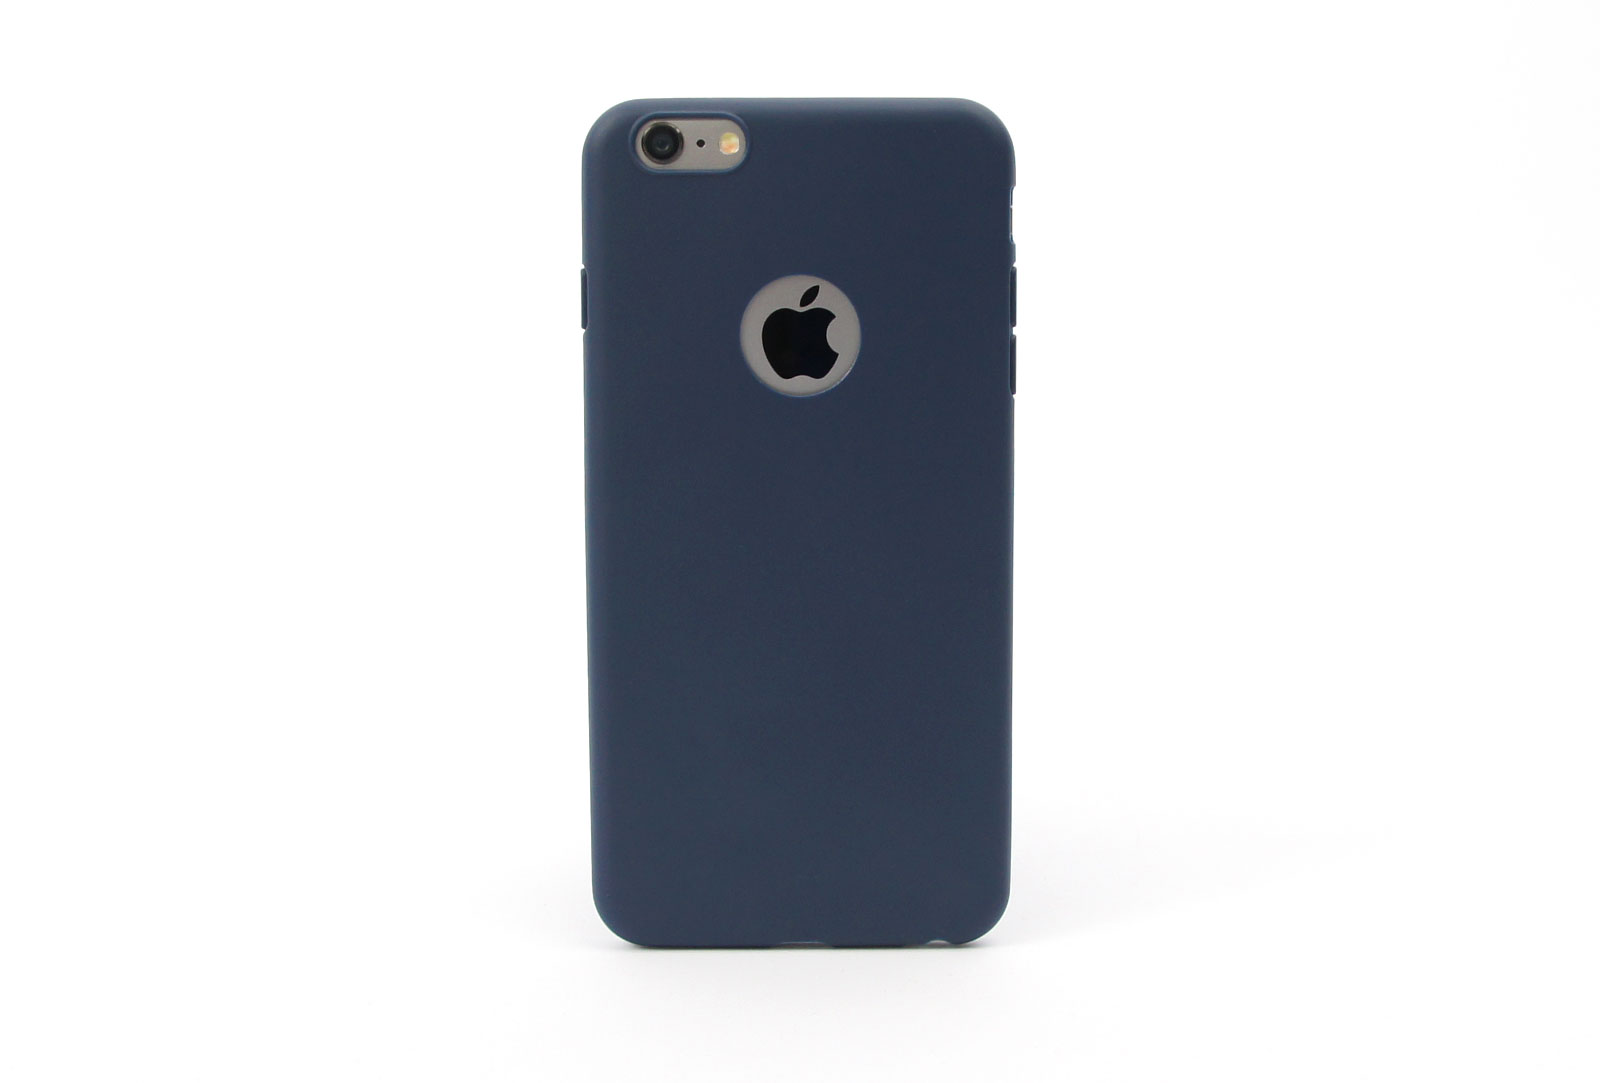 coque silicone souple bleu marine pour iphone 6 s et iphone 6. Black Bedroom Furniture Sets. Home Design Ideas